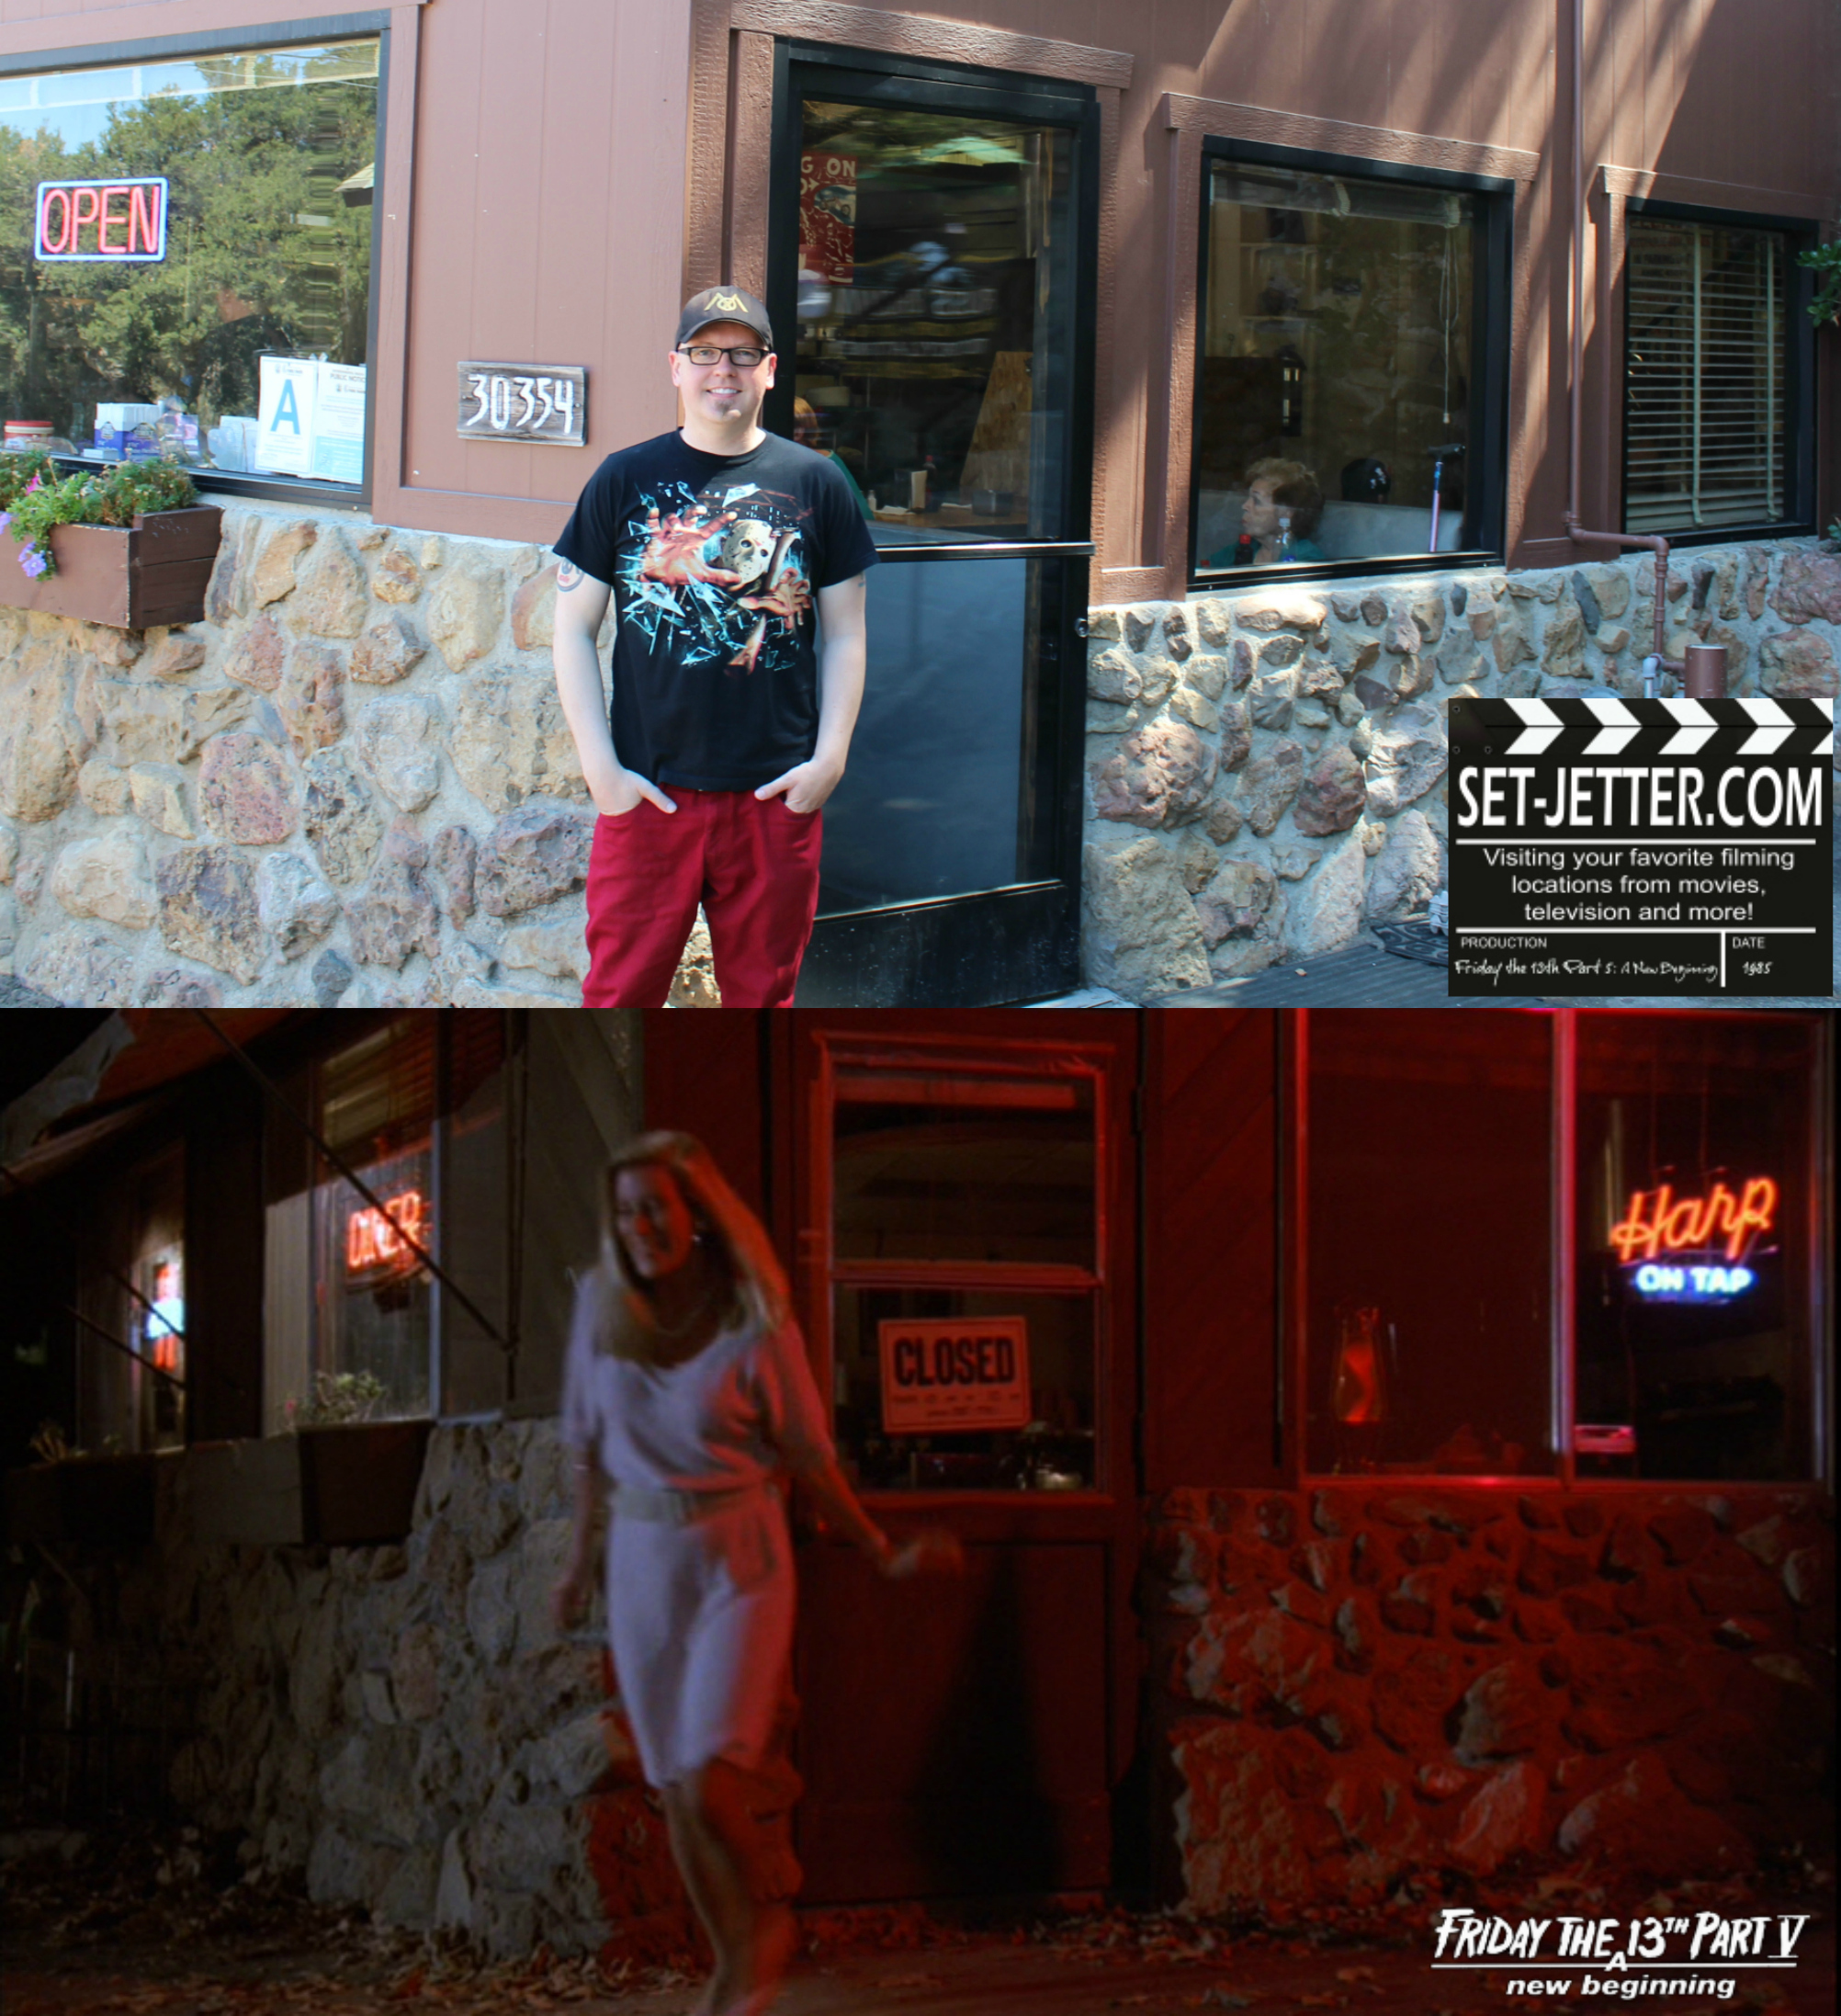 Friday the 13th Part V comparison 16.jpg